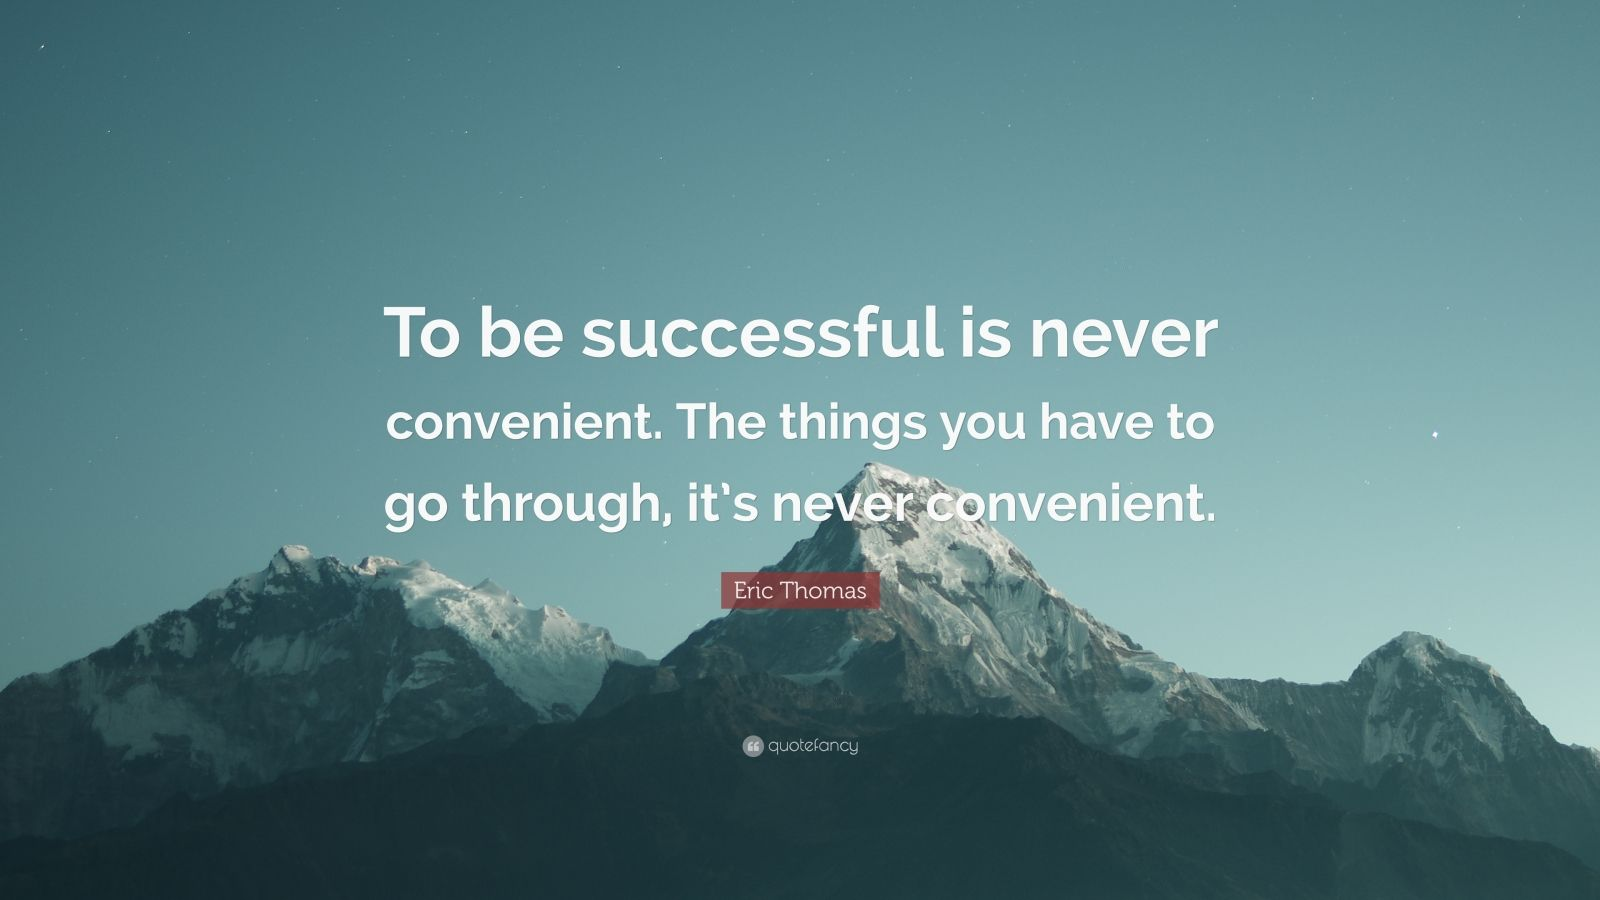 """Eric Thomas Quote: """"To be successful is never convenient. The things you have to go through, it's never convenient."""""""